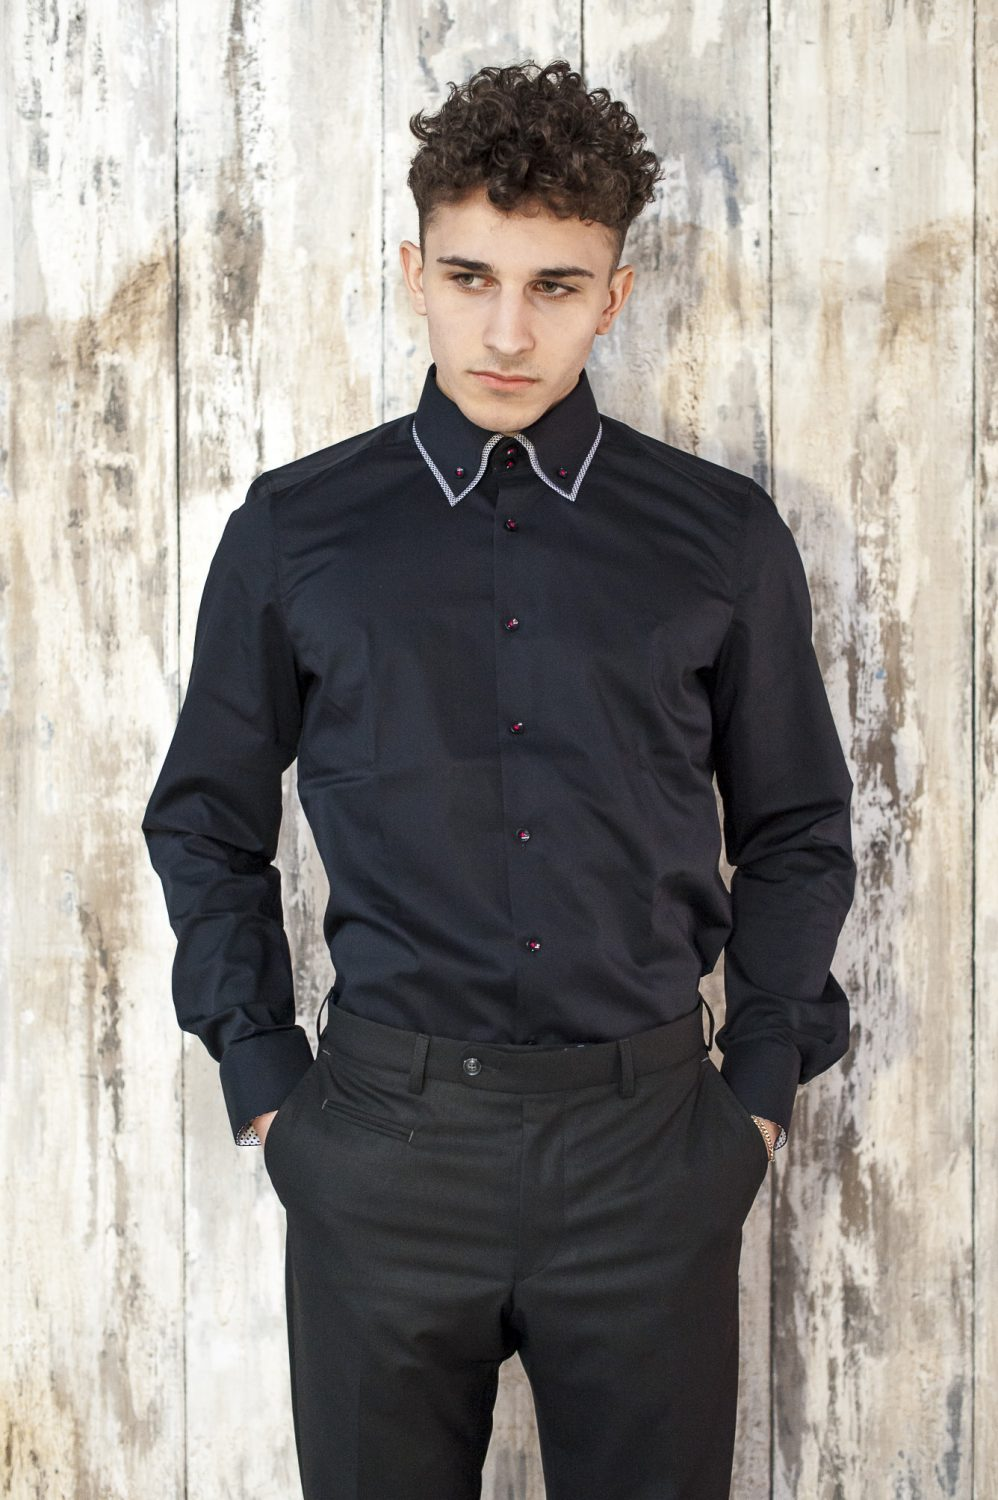 Digel black trousers, £95, Olymp black shirt, £69.50, County Clothes, Canterbury 01227 765294 / Tenterden 01580 765159 / Reigate 01737 249224 countyclothesmenswear.co.uk